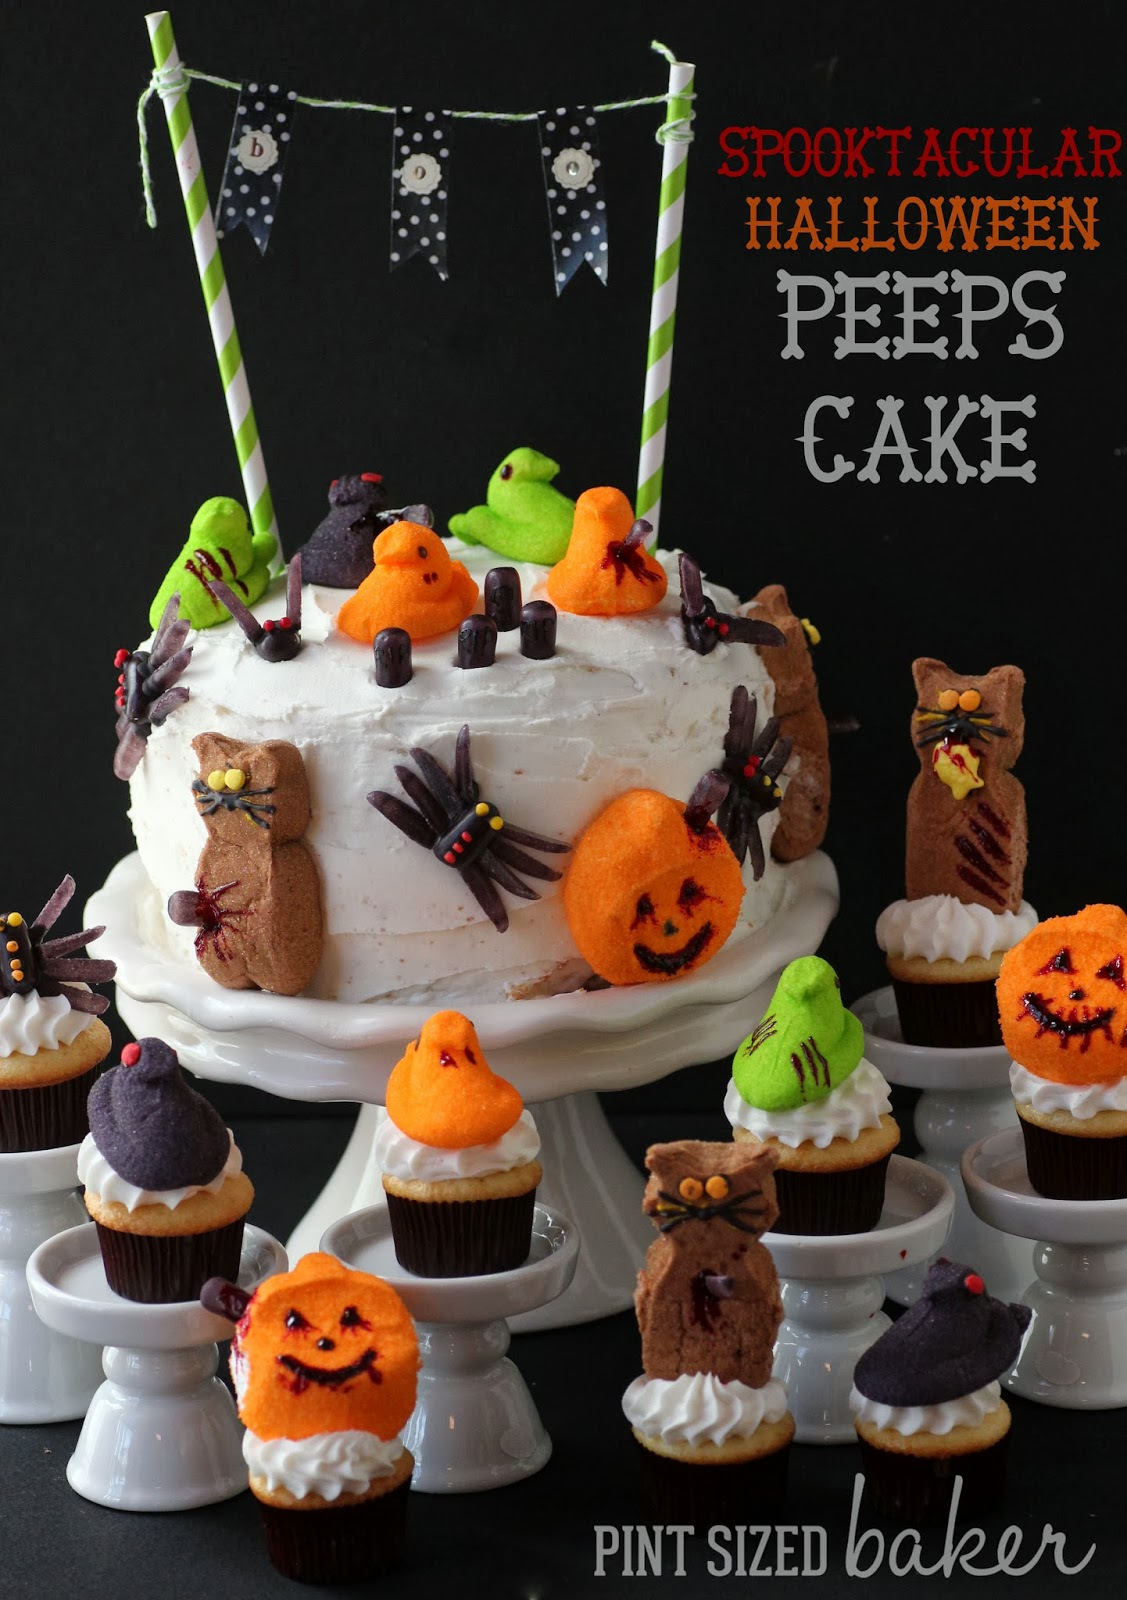 Halloween Peeps Cake - Pint Sized Baker